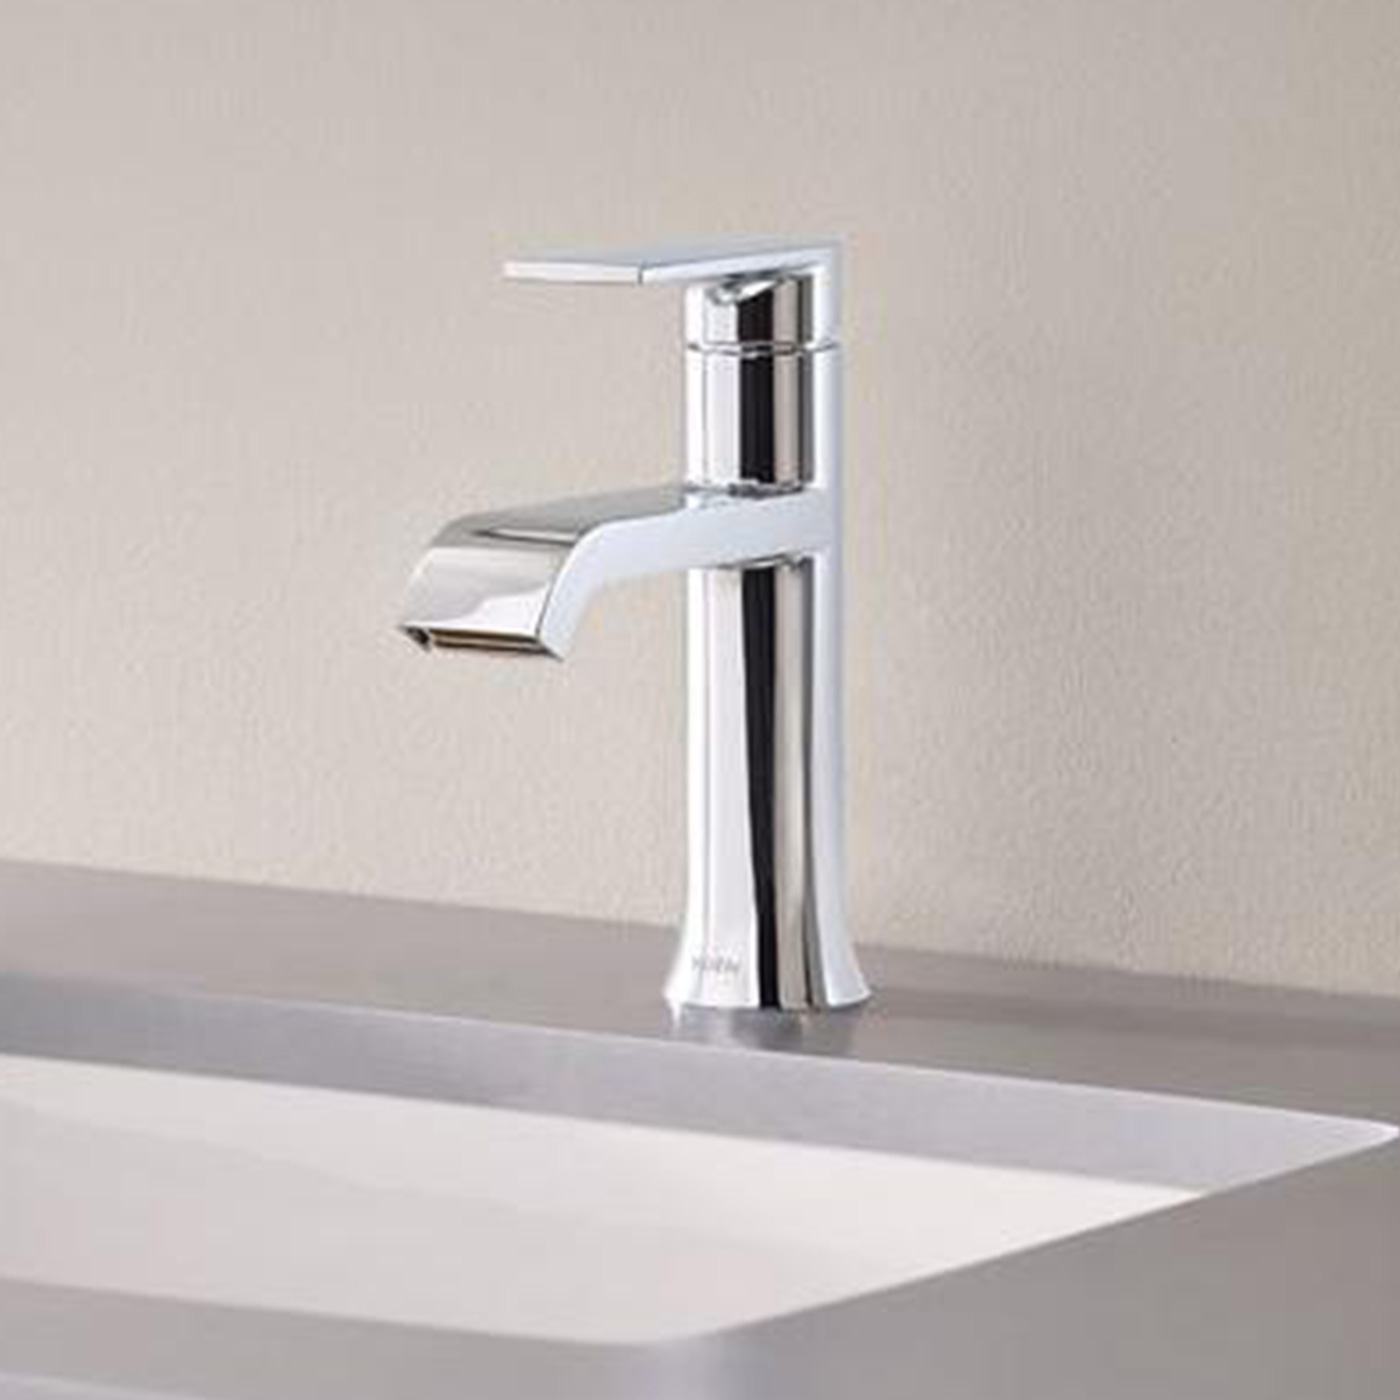 faucets trim bath handle claymore roman tub bathroom two